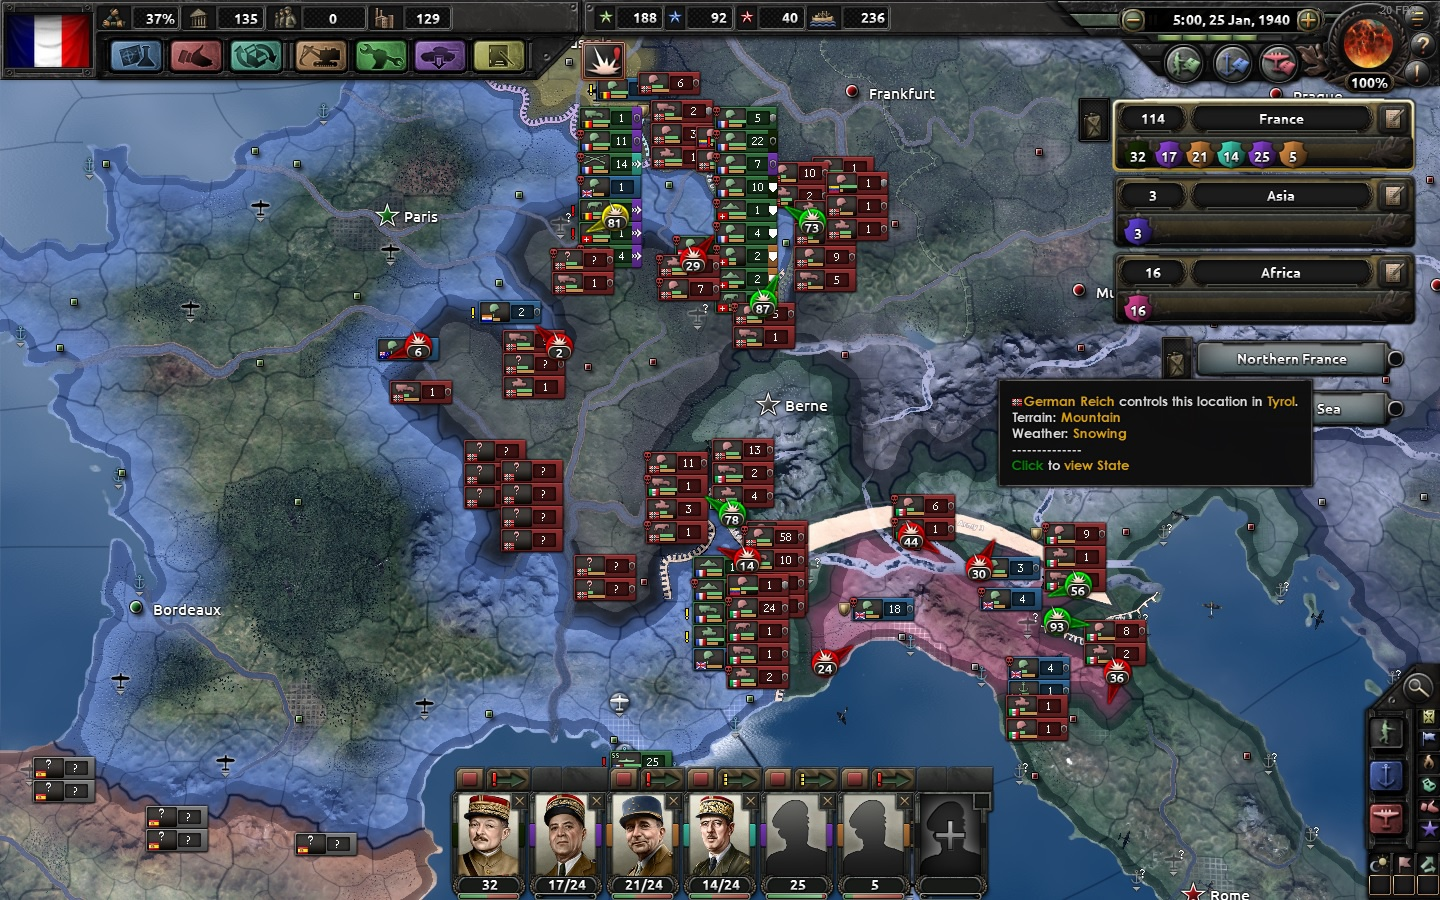 PC] Hearts of Iron IV - Strategy Games - GoT